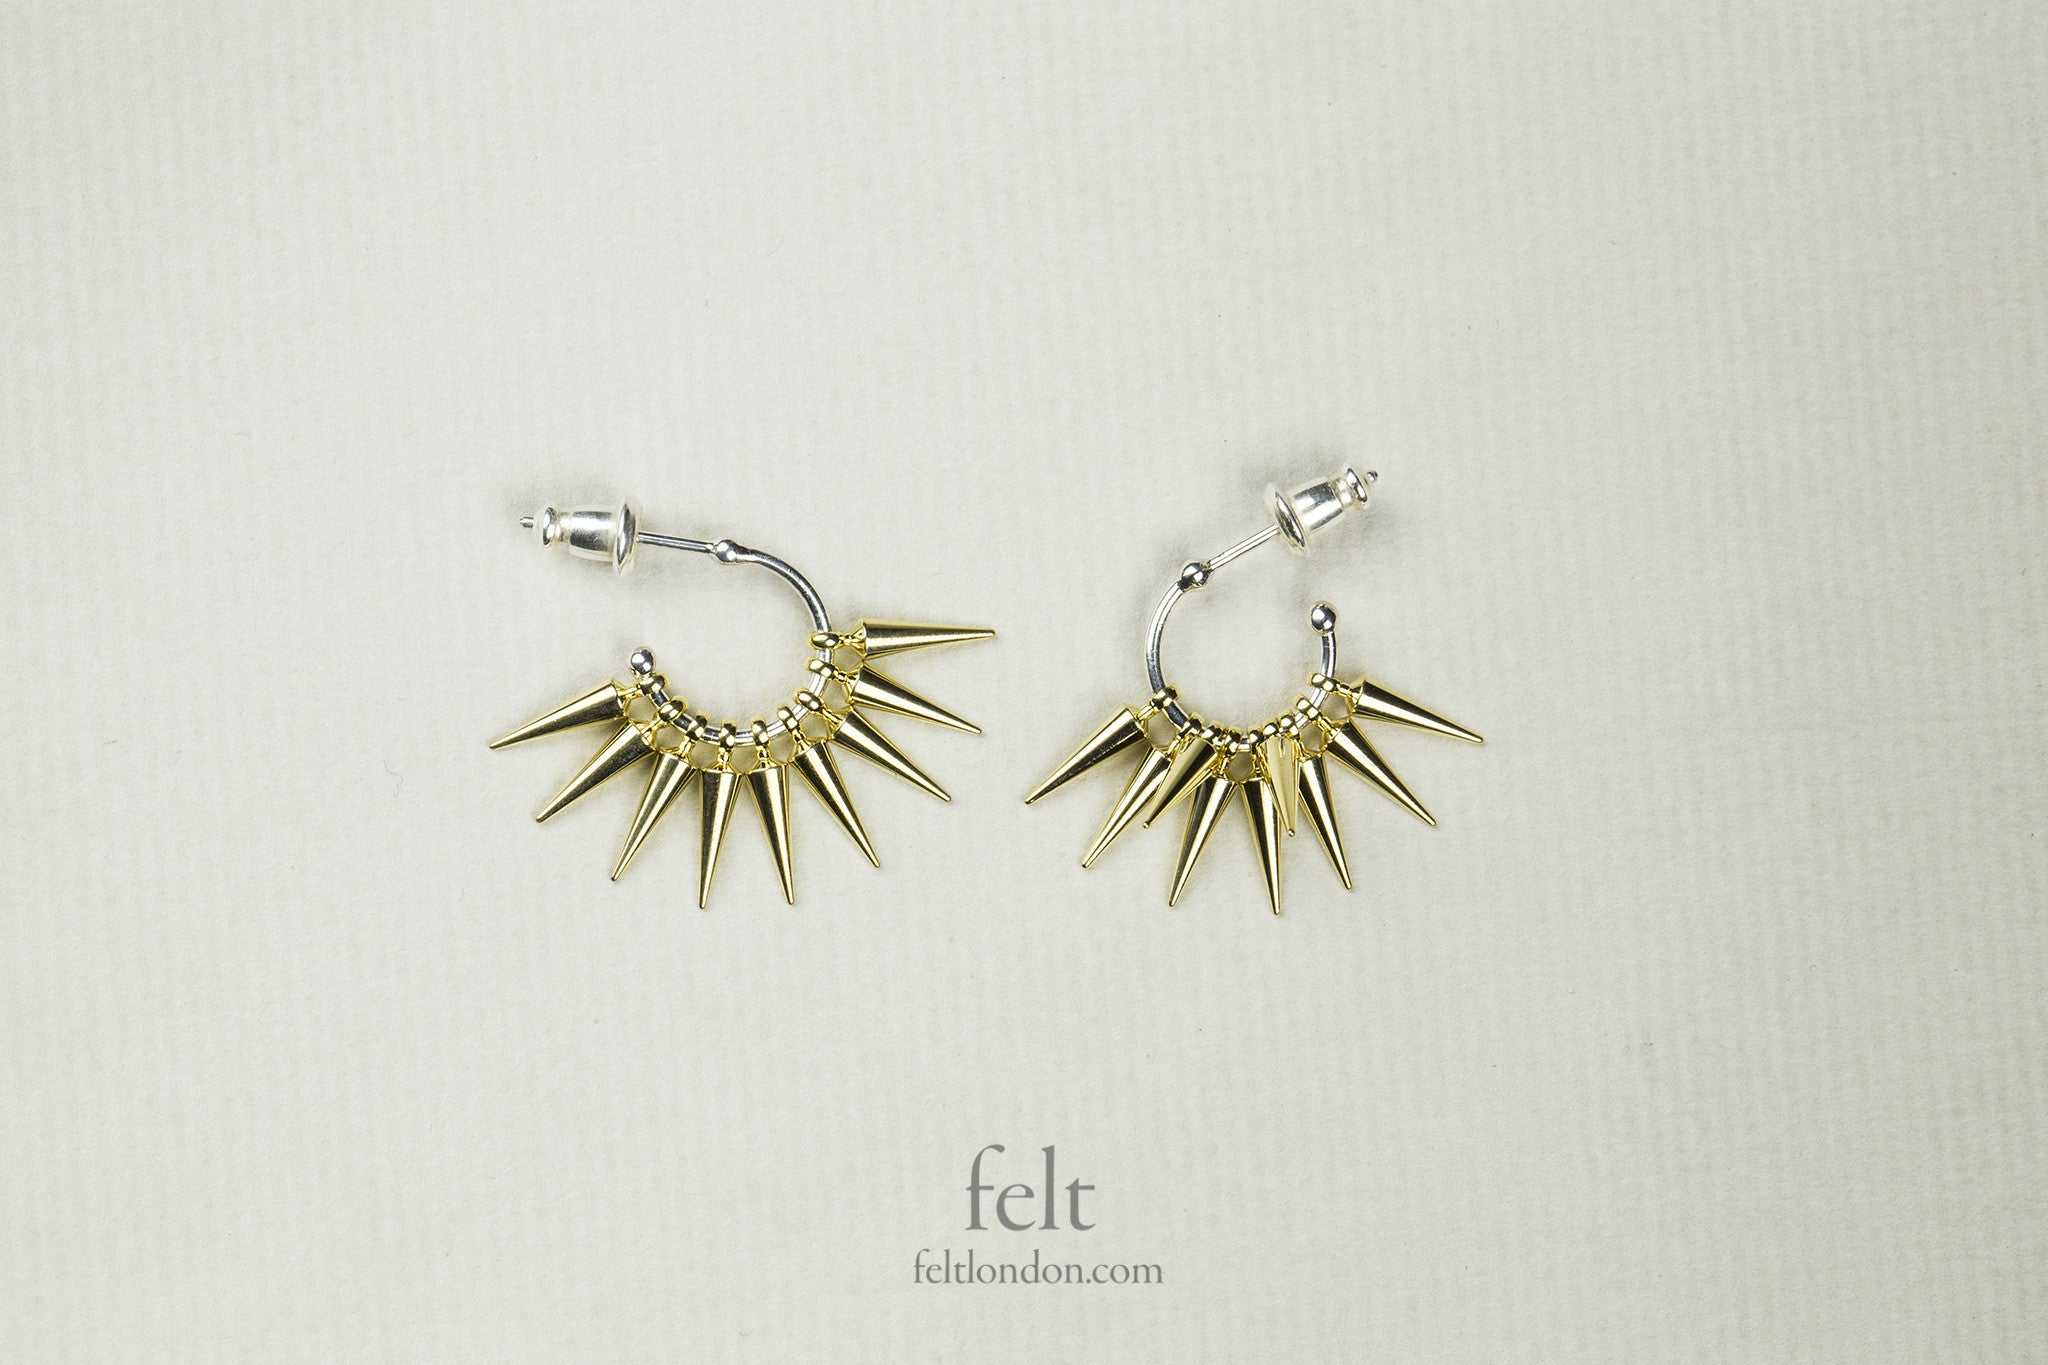 Spiked cluster earrings also available at felt